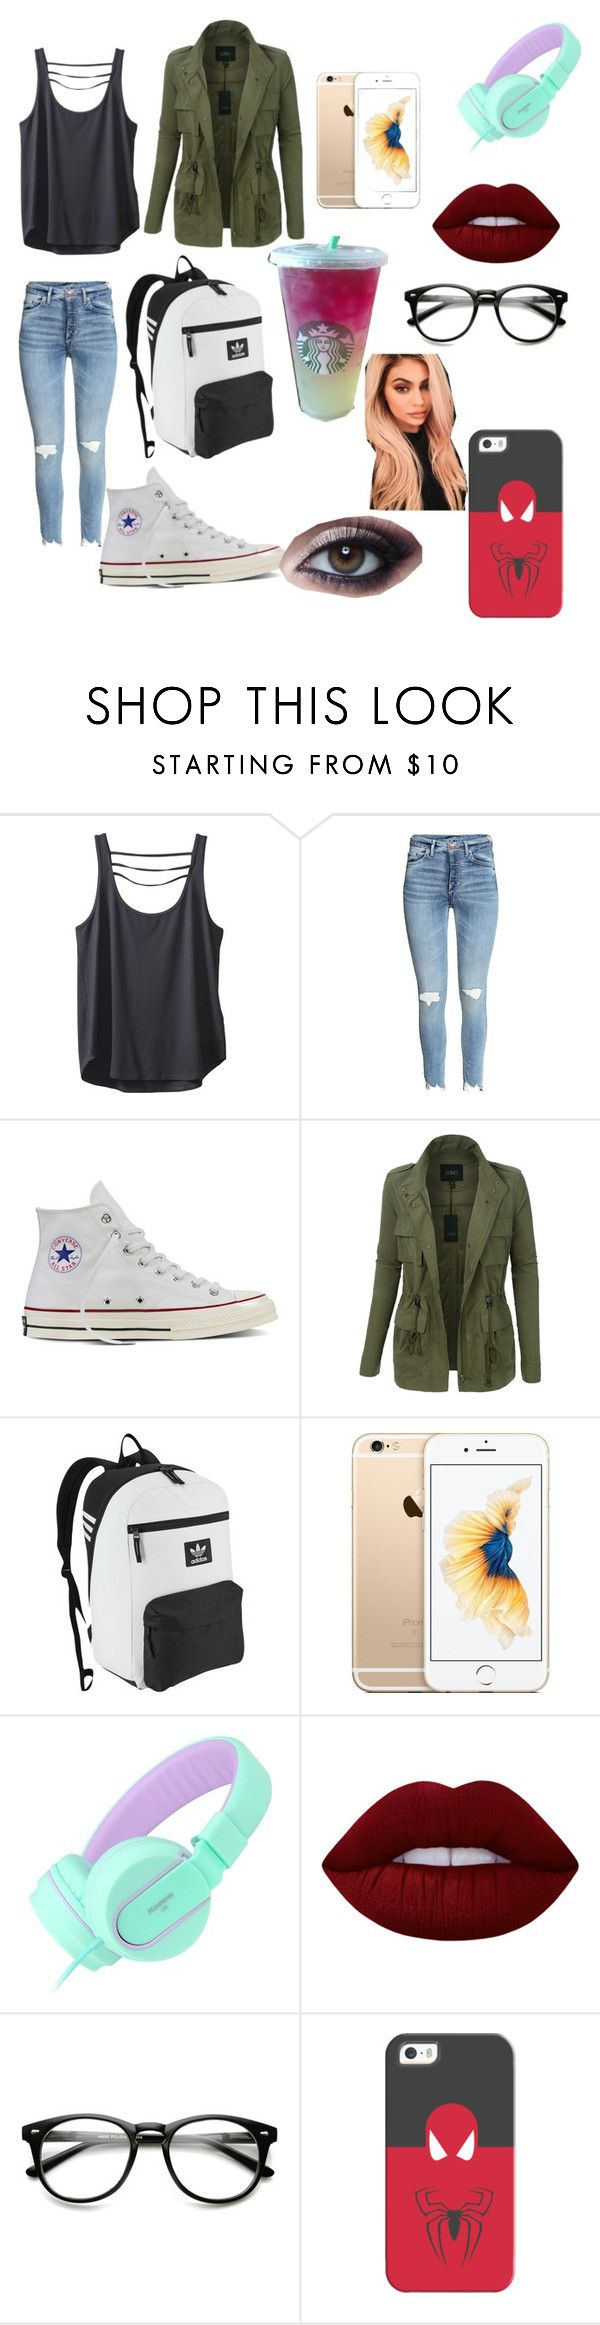 """""""Julie Fishers / Juno ( symbiote OC / Spider-Man OC)"""" by karabear3256 ❤ liked on Polyvore featuring Kavu, Converse, LE3NO, adidas Originals, Lime Crime, Casetify and Justin Bieber"""